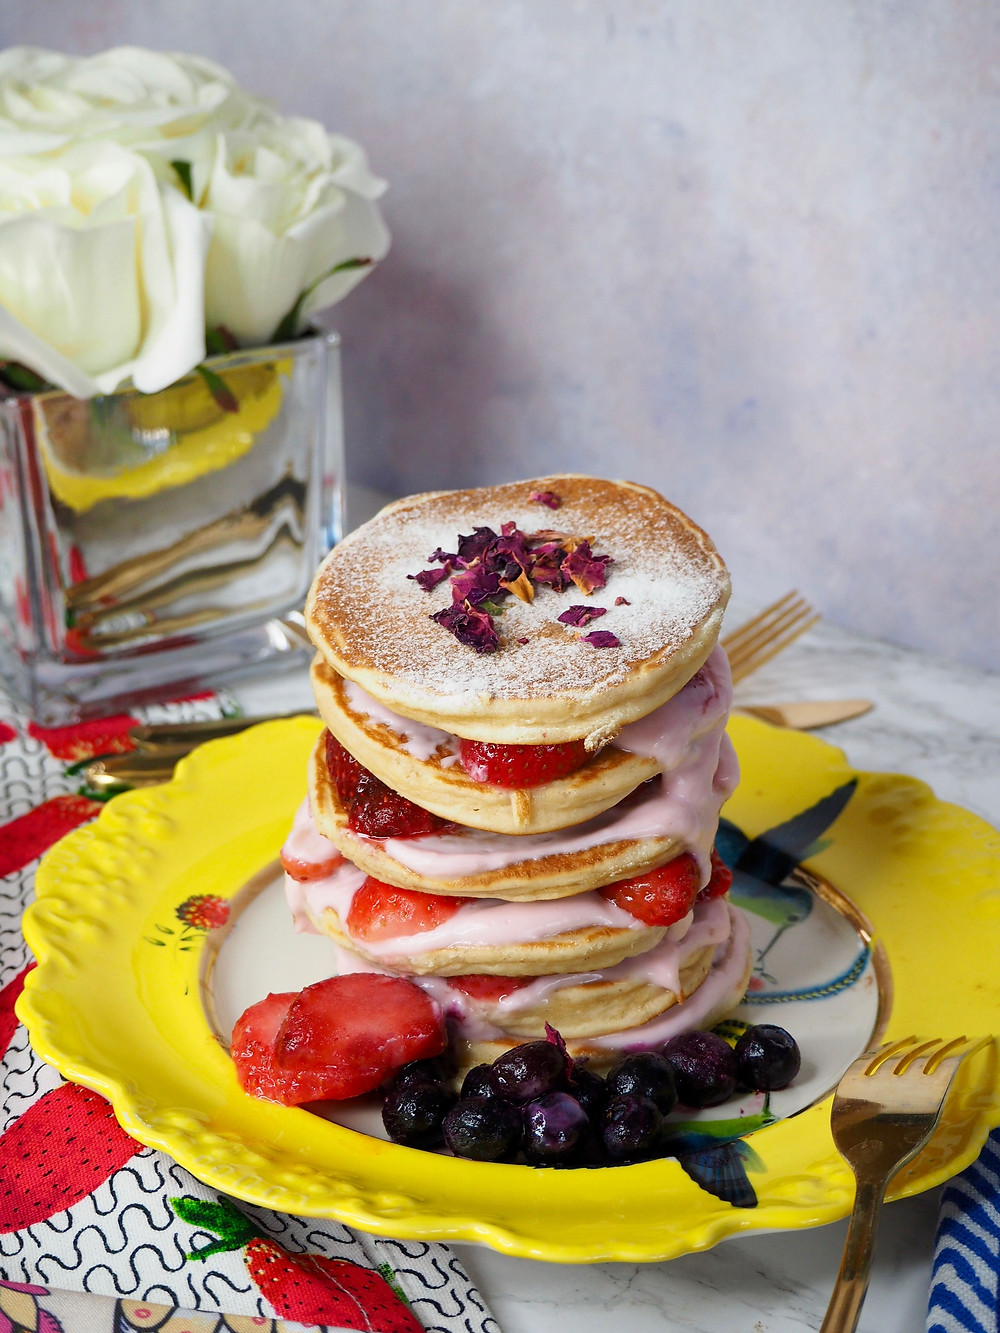 The best pancake recipes ever, stack of pancakes on a yellow plate with strawberries and blueberries and pink yogurt